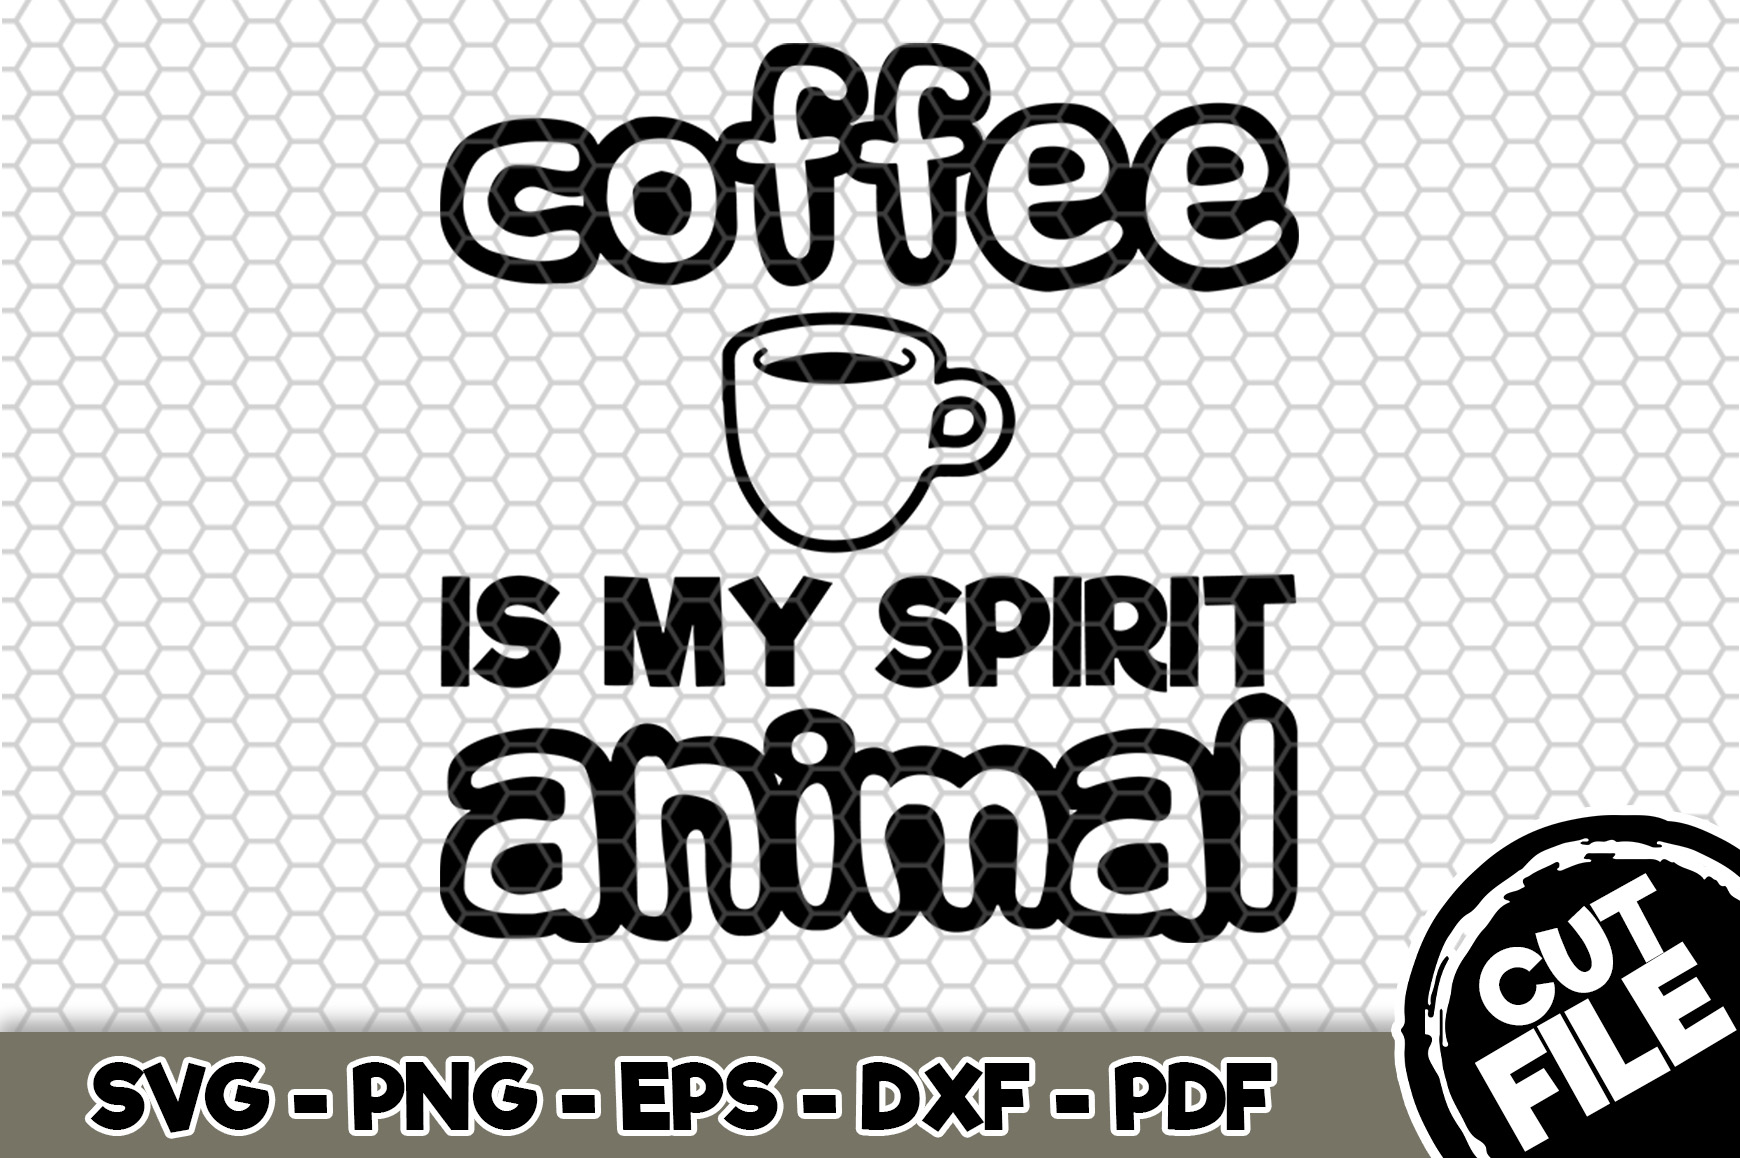 Download Free Coffee Is My Spirit Animal Graphic By Svgexpress Creative Fabrica for Cricut Explore, Silhouette and other cutting machines.